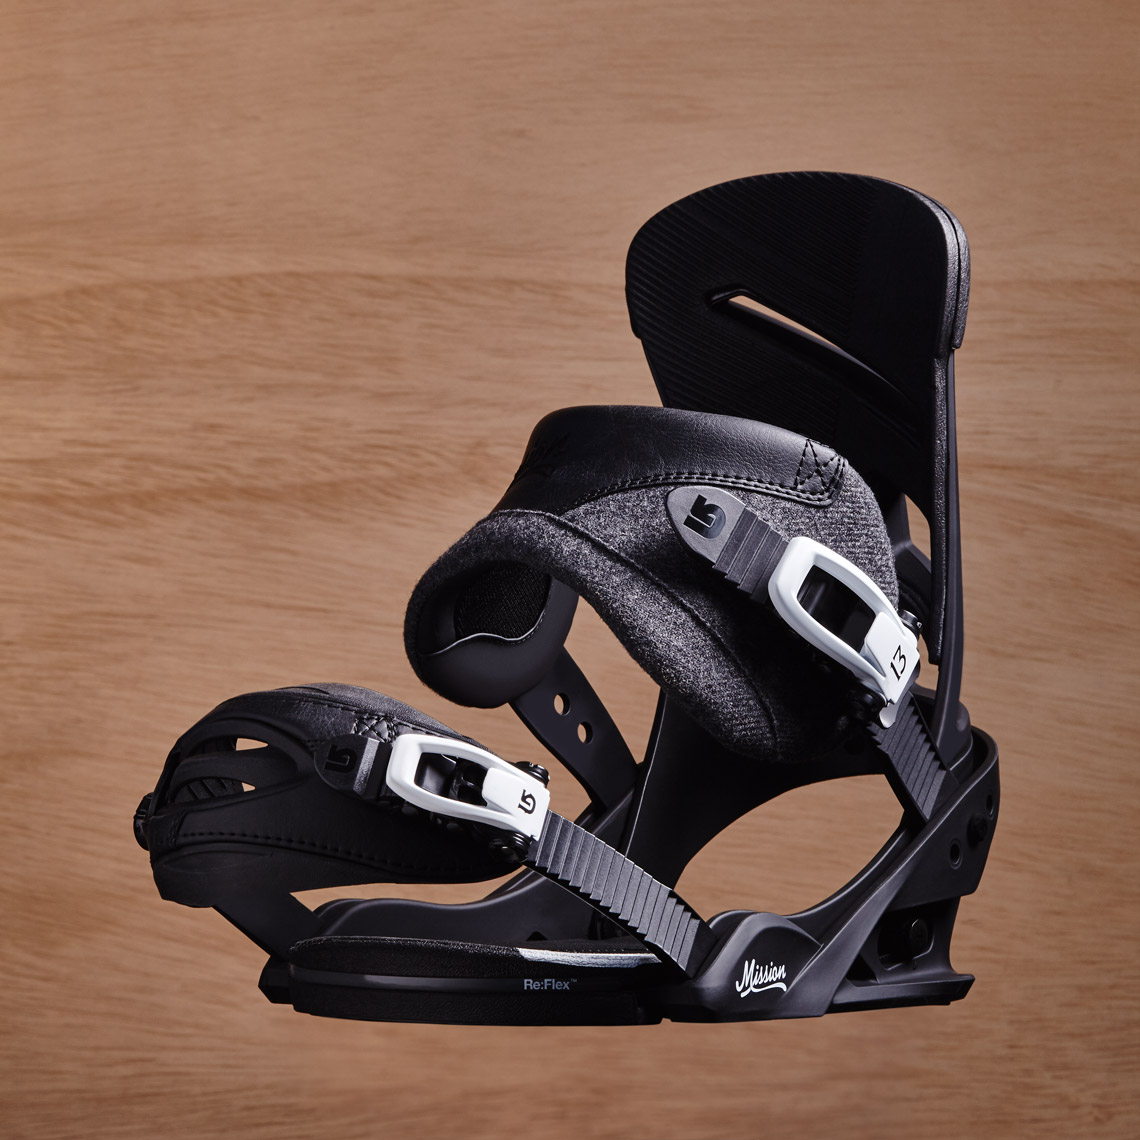 Product Photograpy Gear Burton Mission Snowboard Binding Profile Black From REI Floating In Air Denver